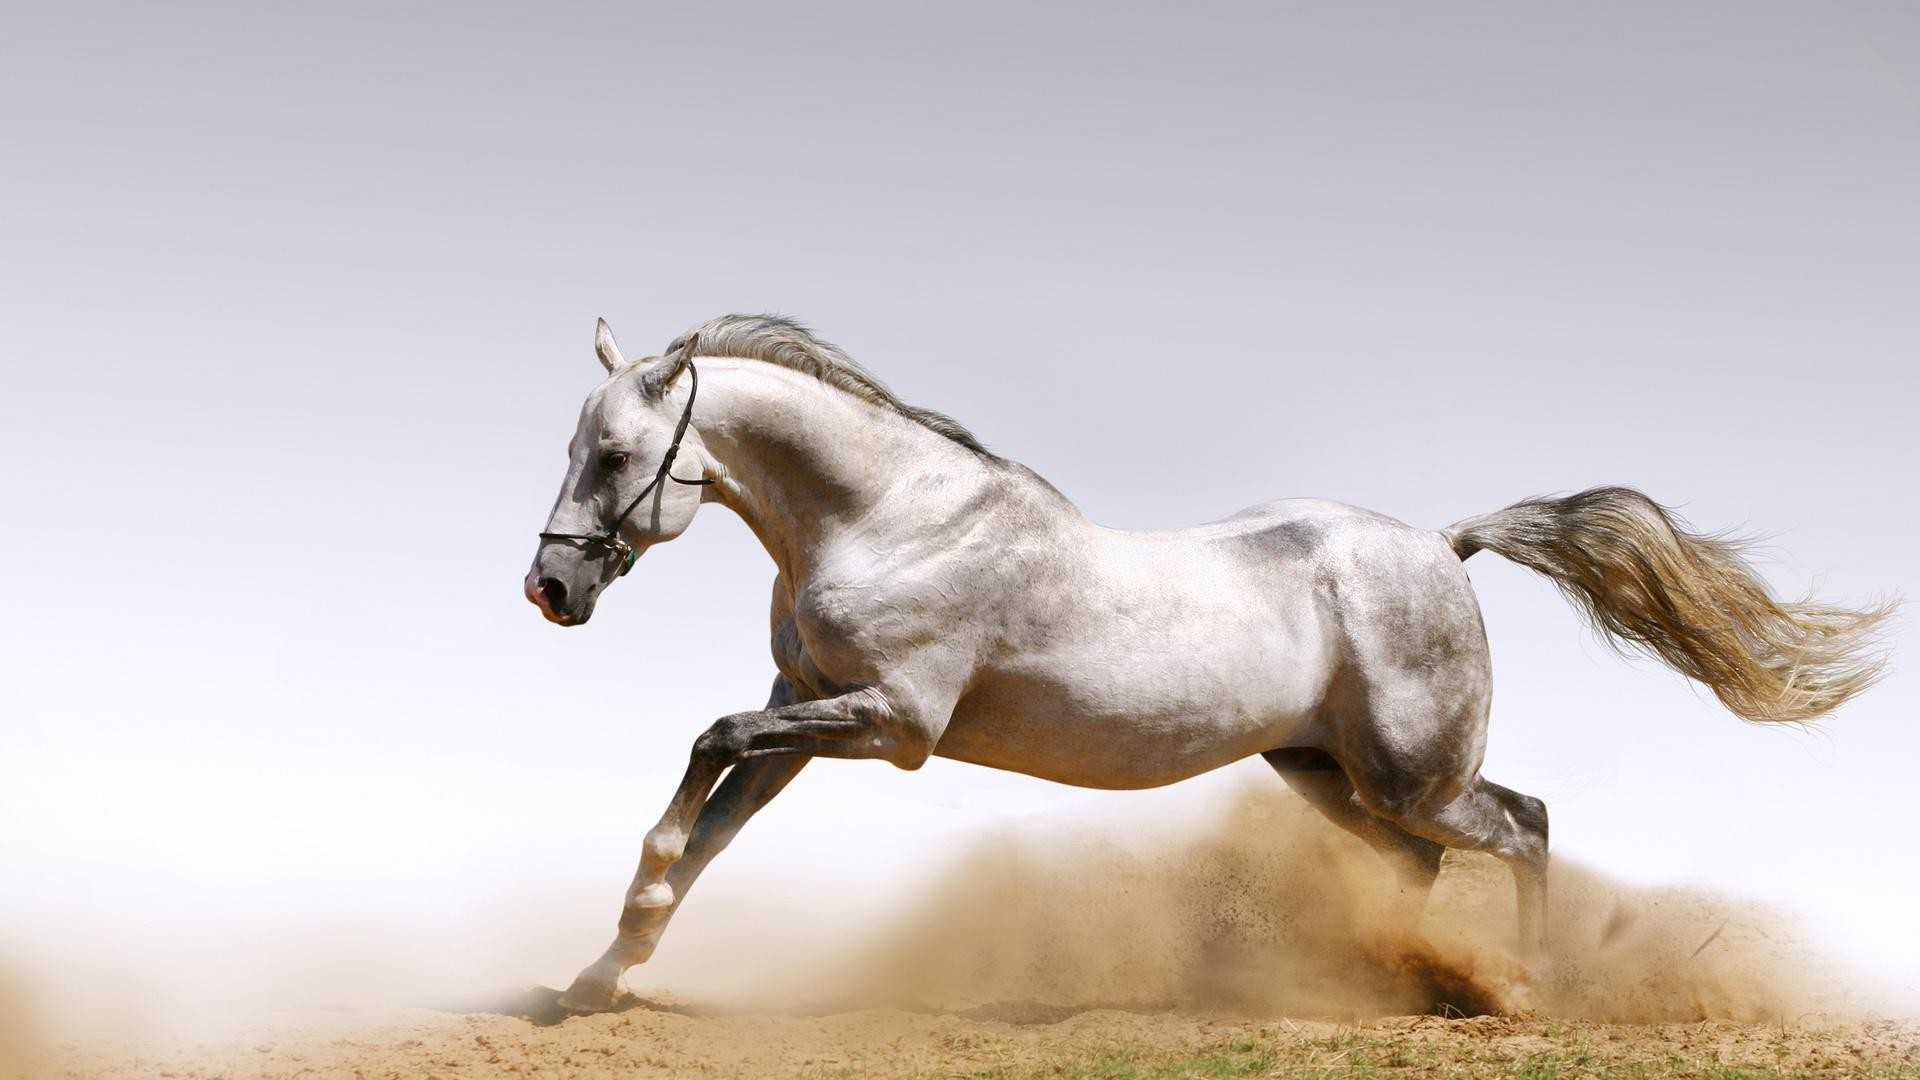 1920x1080 ... Arabian Horse Wallpapers, Pictures, Images ...